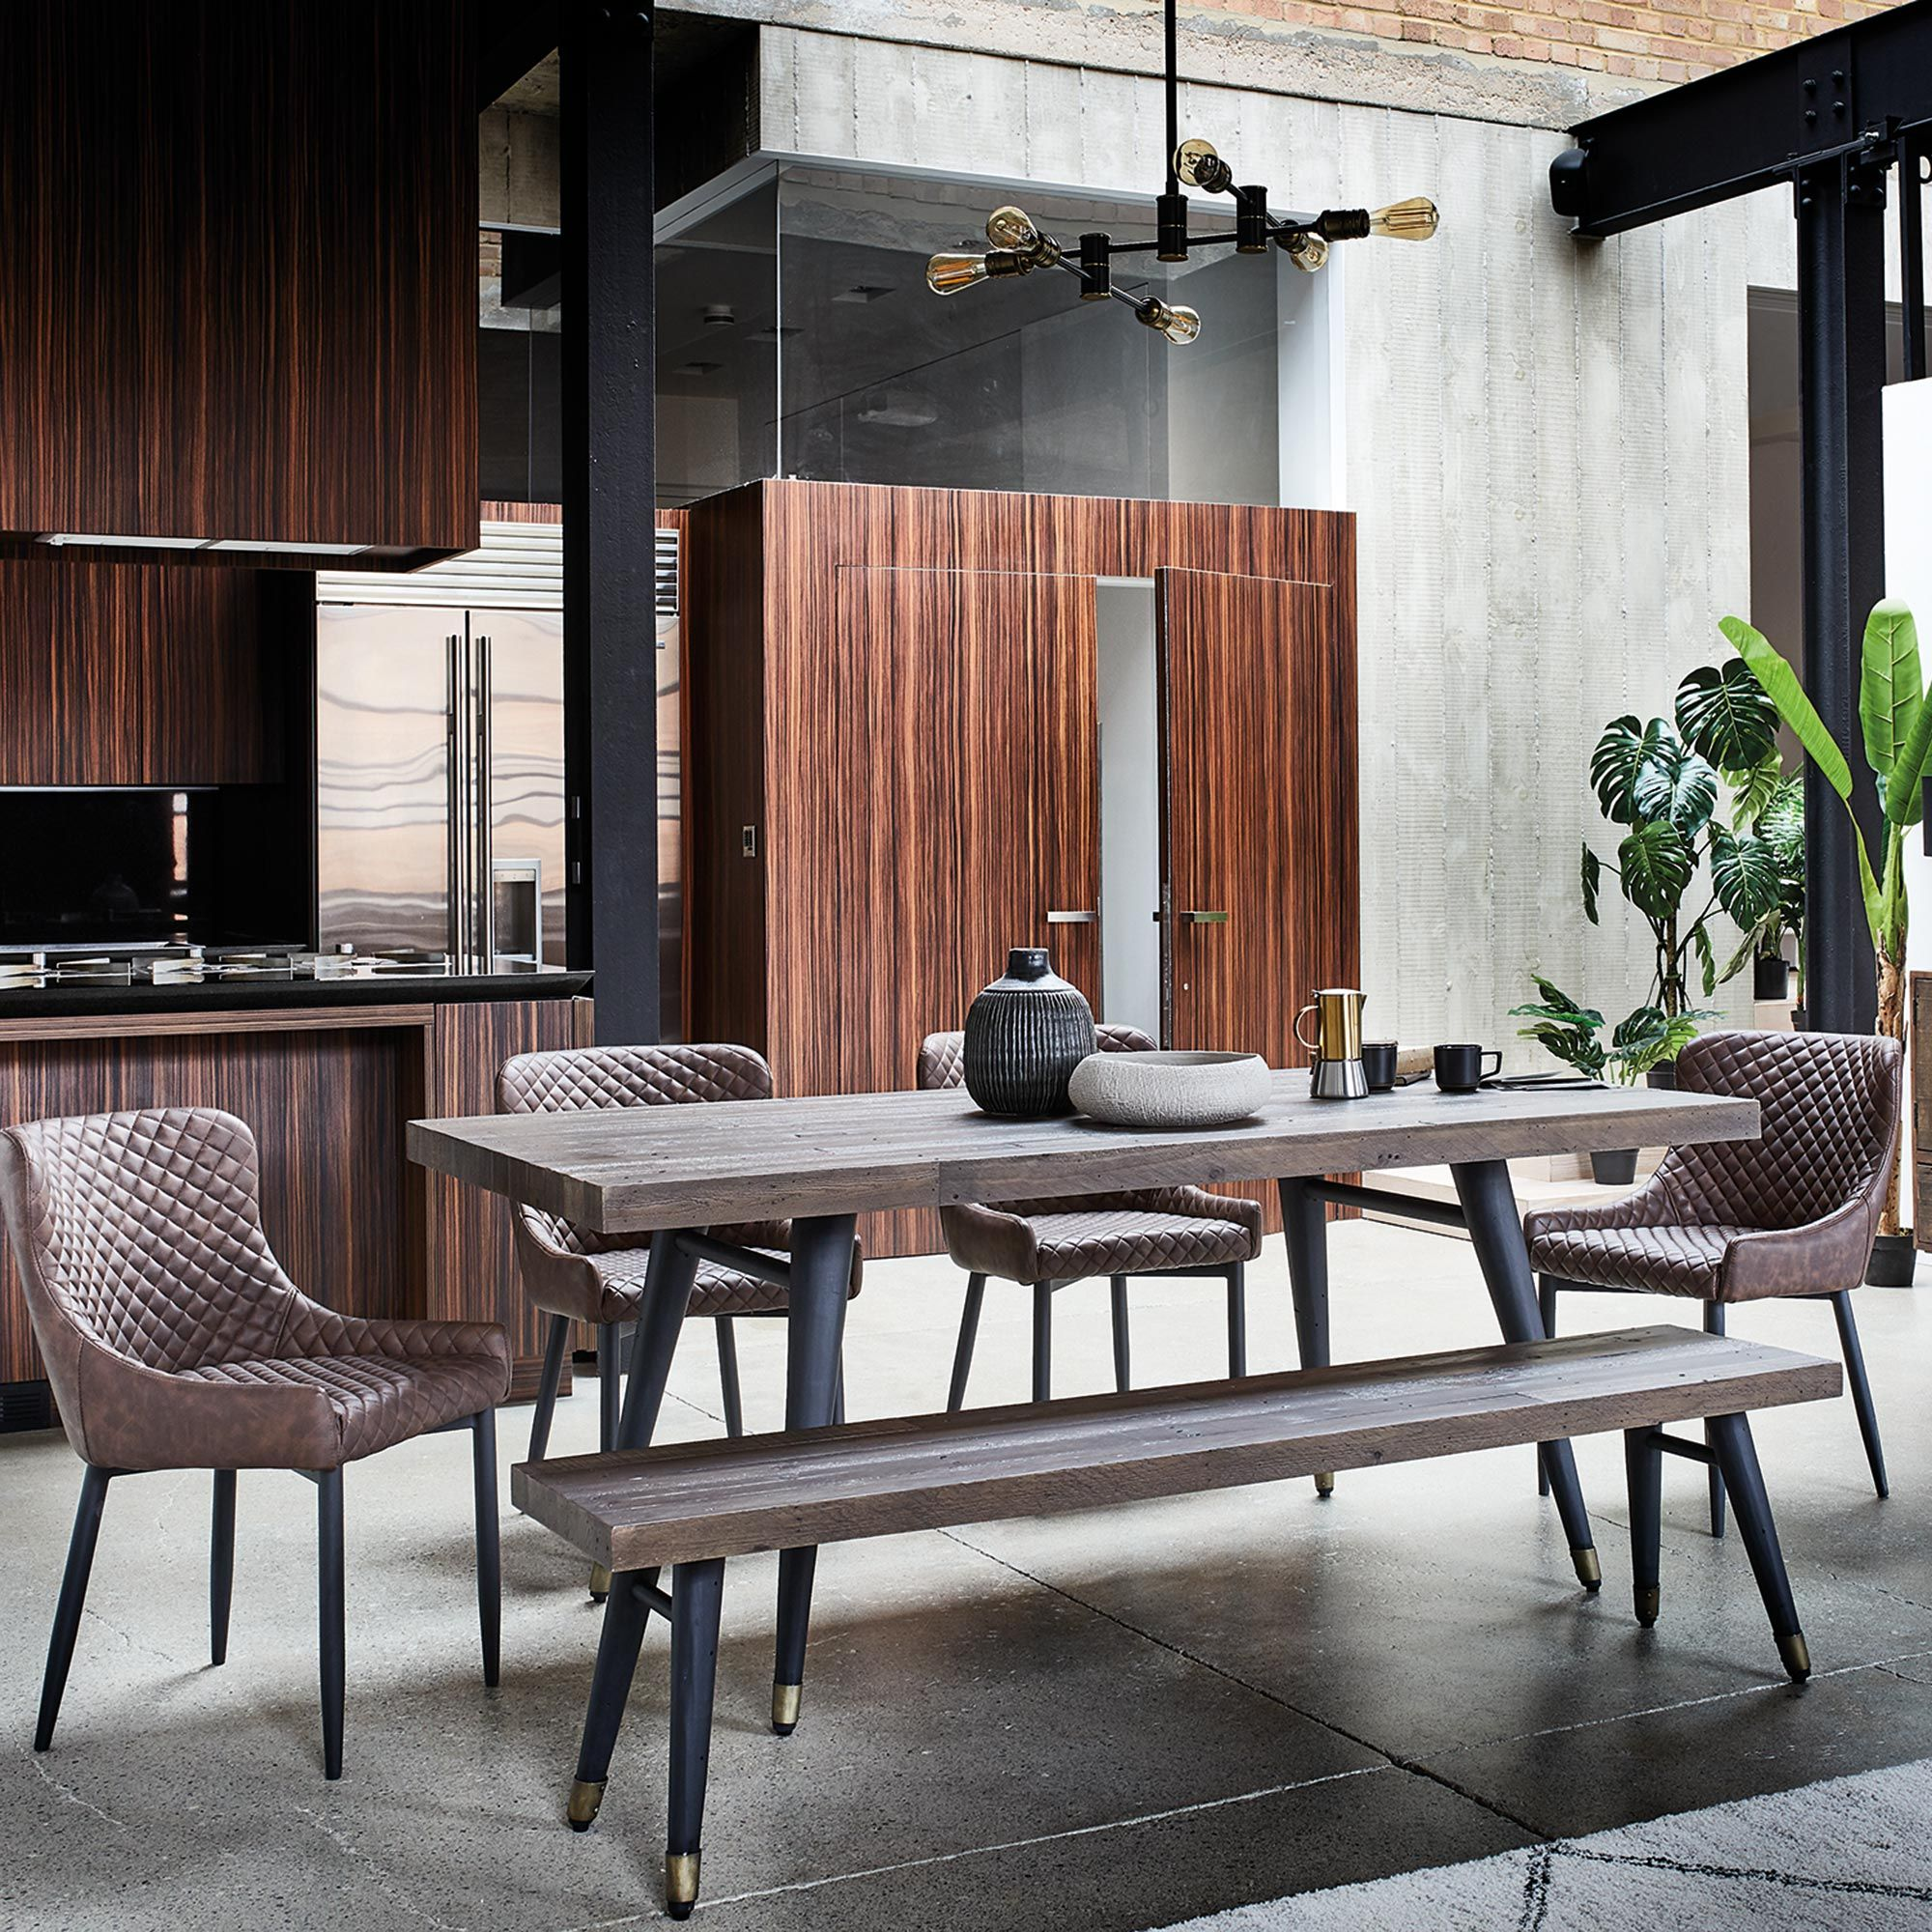 b36e6f4df045 Modi Extending Dining Table available online at Barker & Stonehouse. Browse  our fabulous range today!